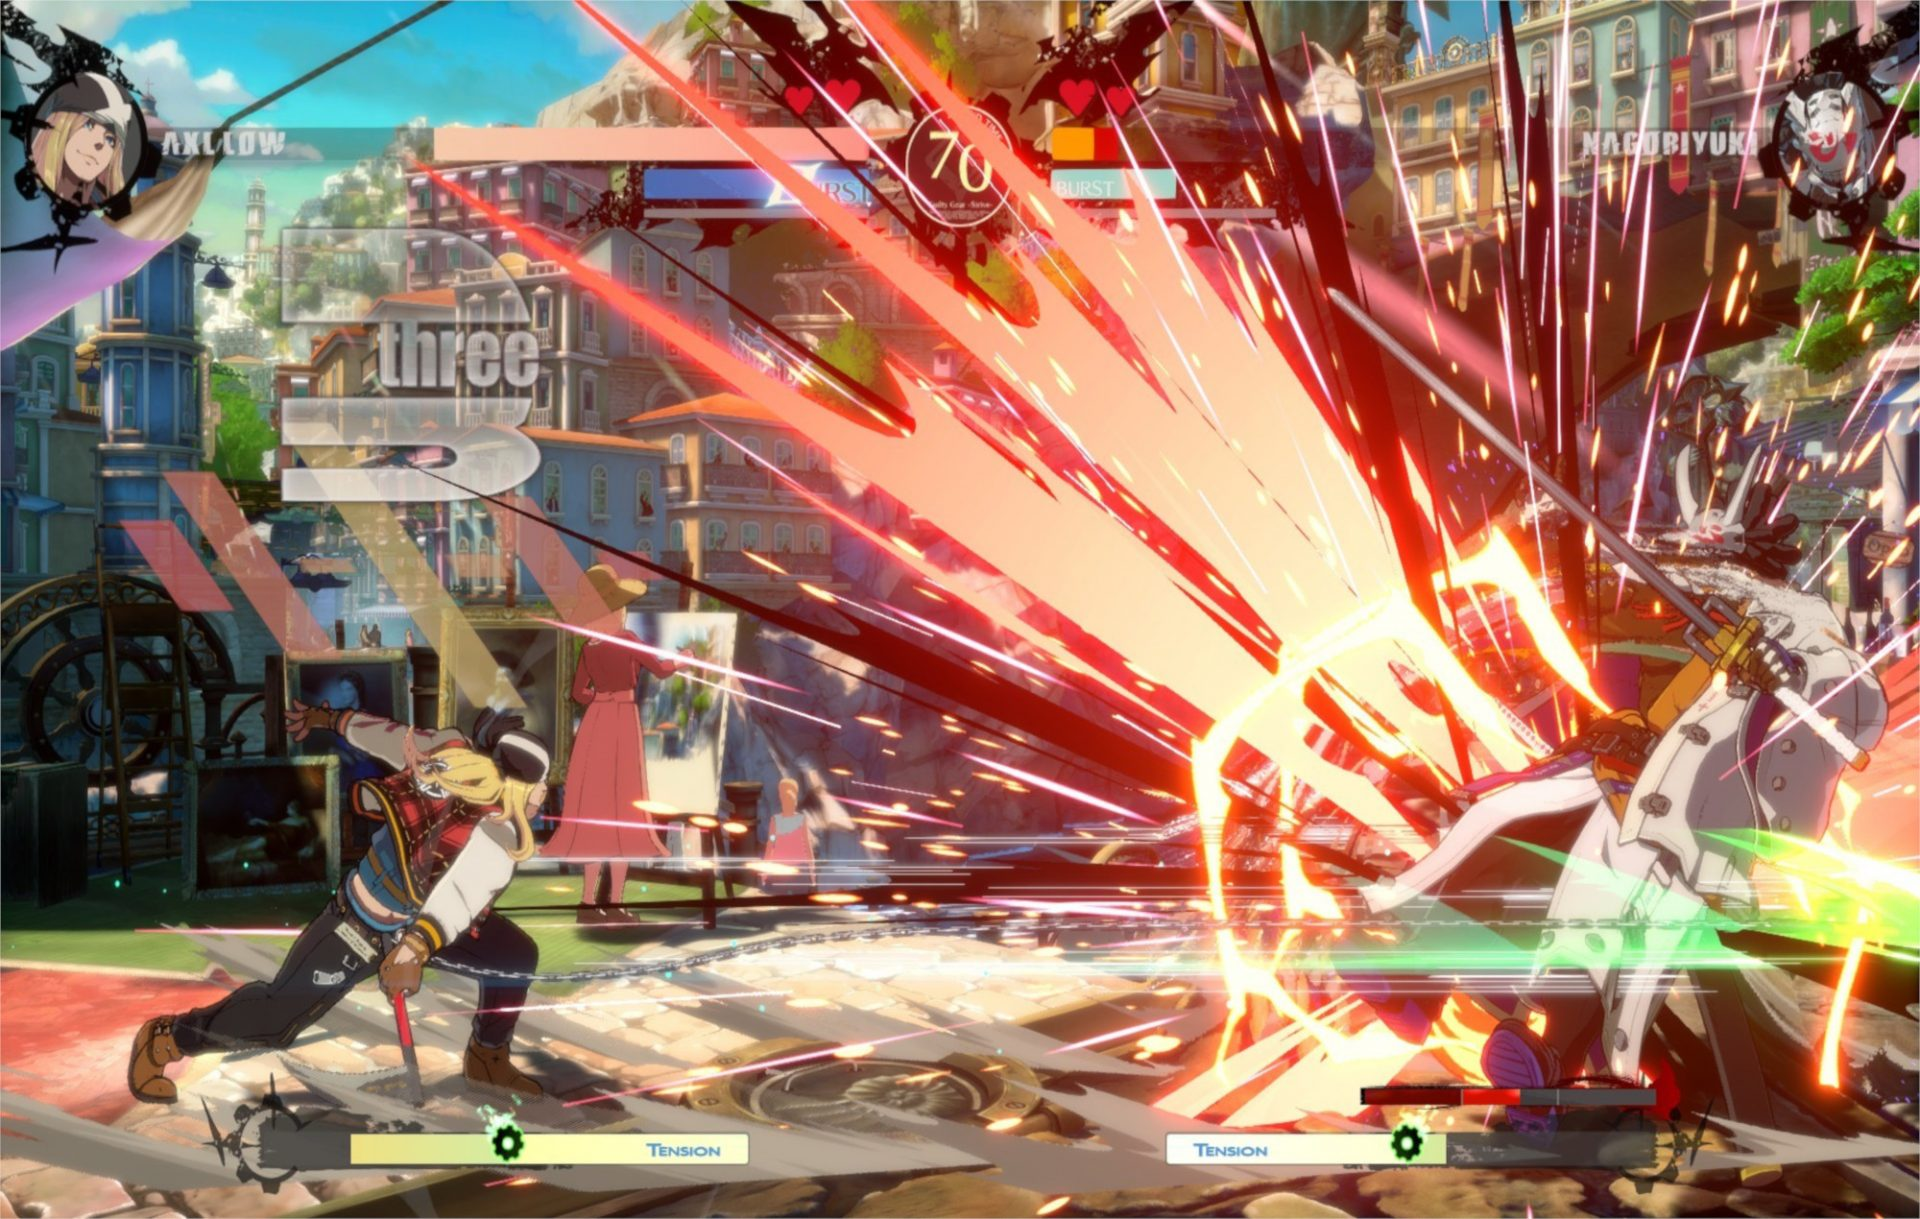 guilty gear -strive-, fighting, arc system, combo